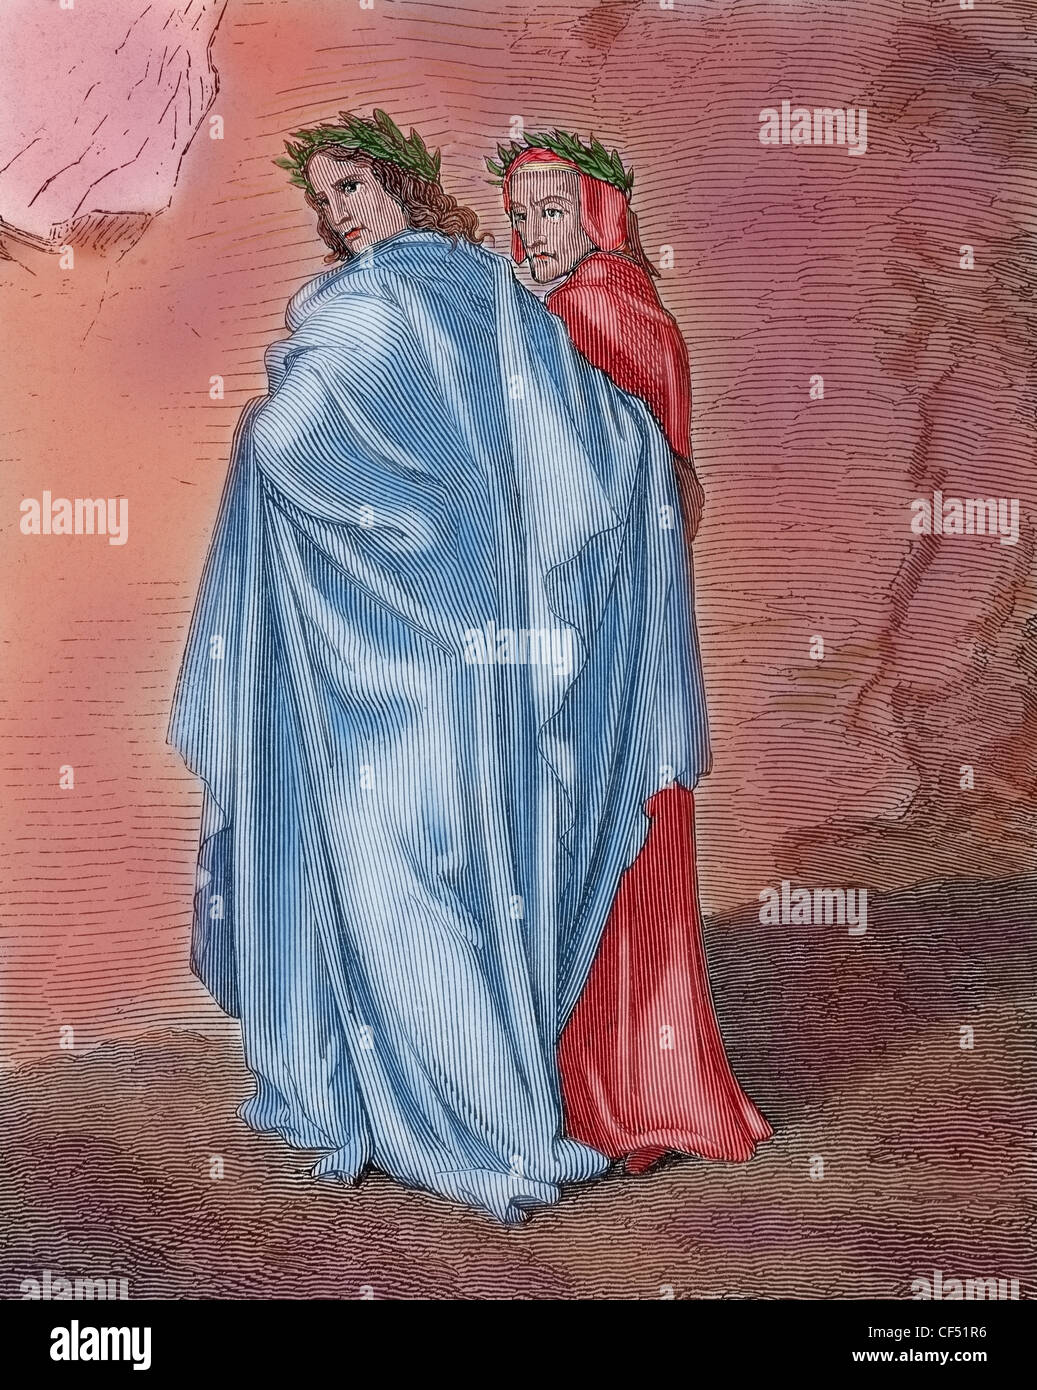 what is the allegorical relationship between dante and virgil